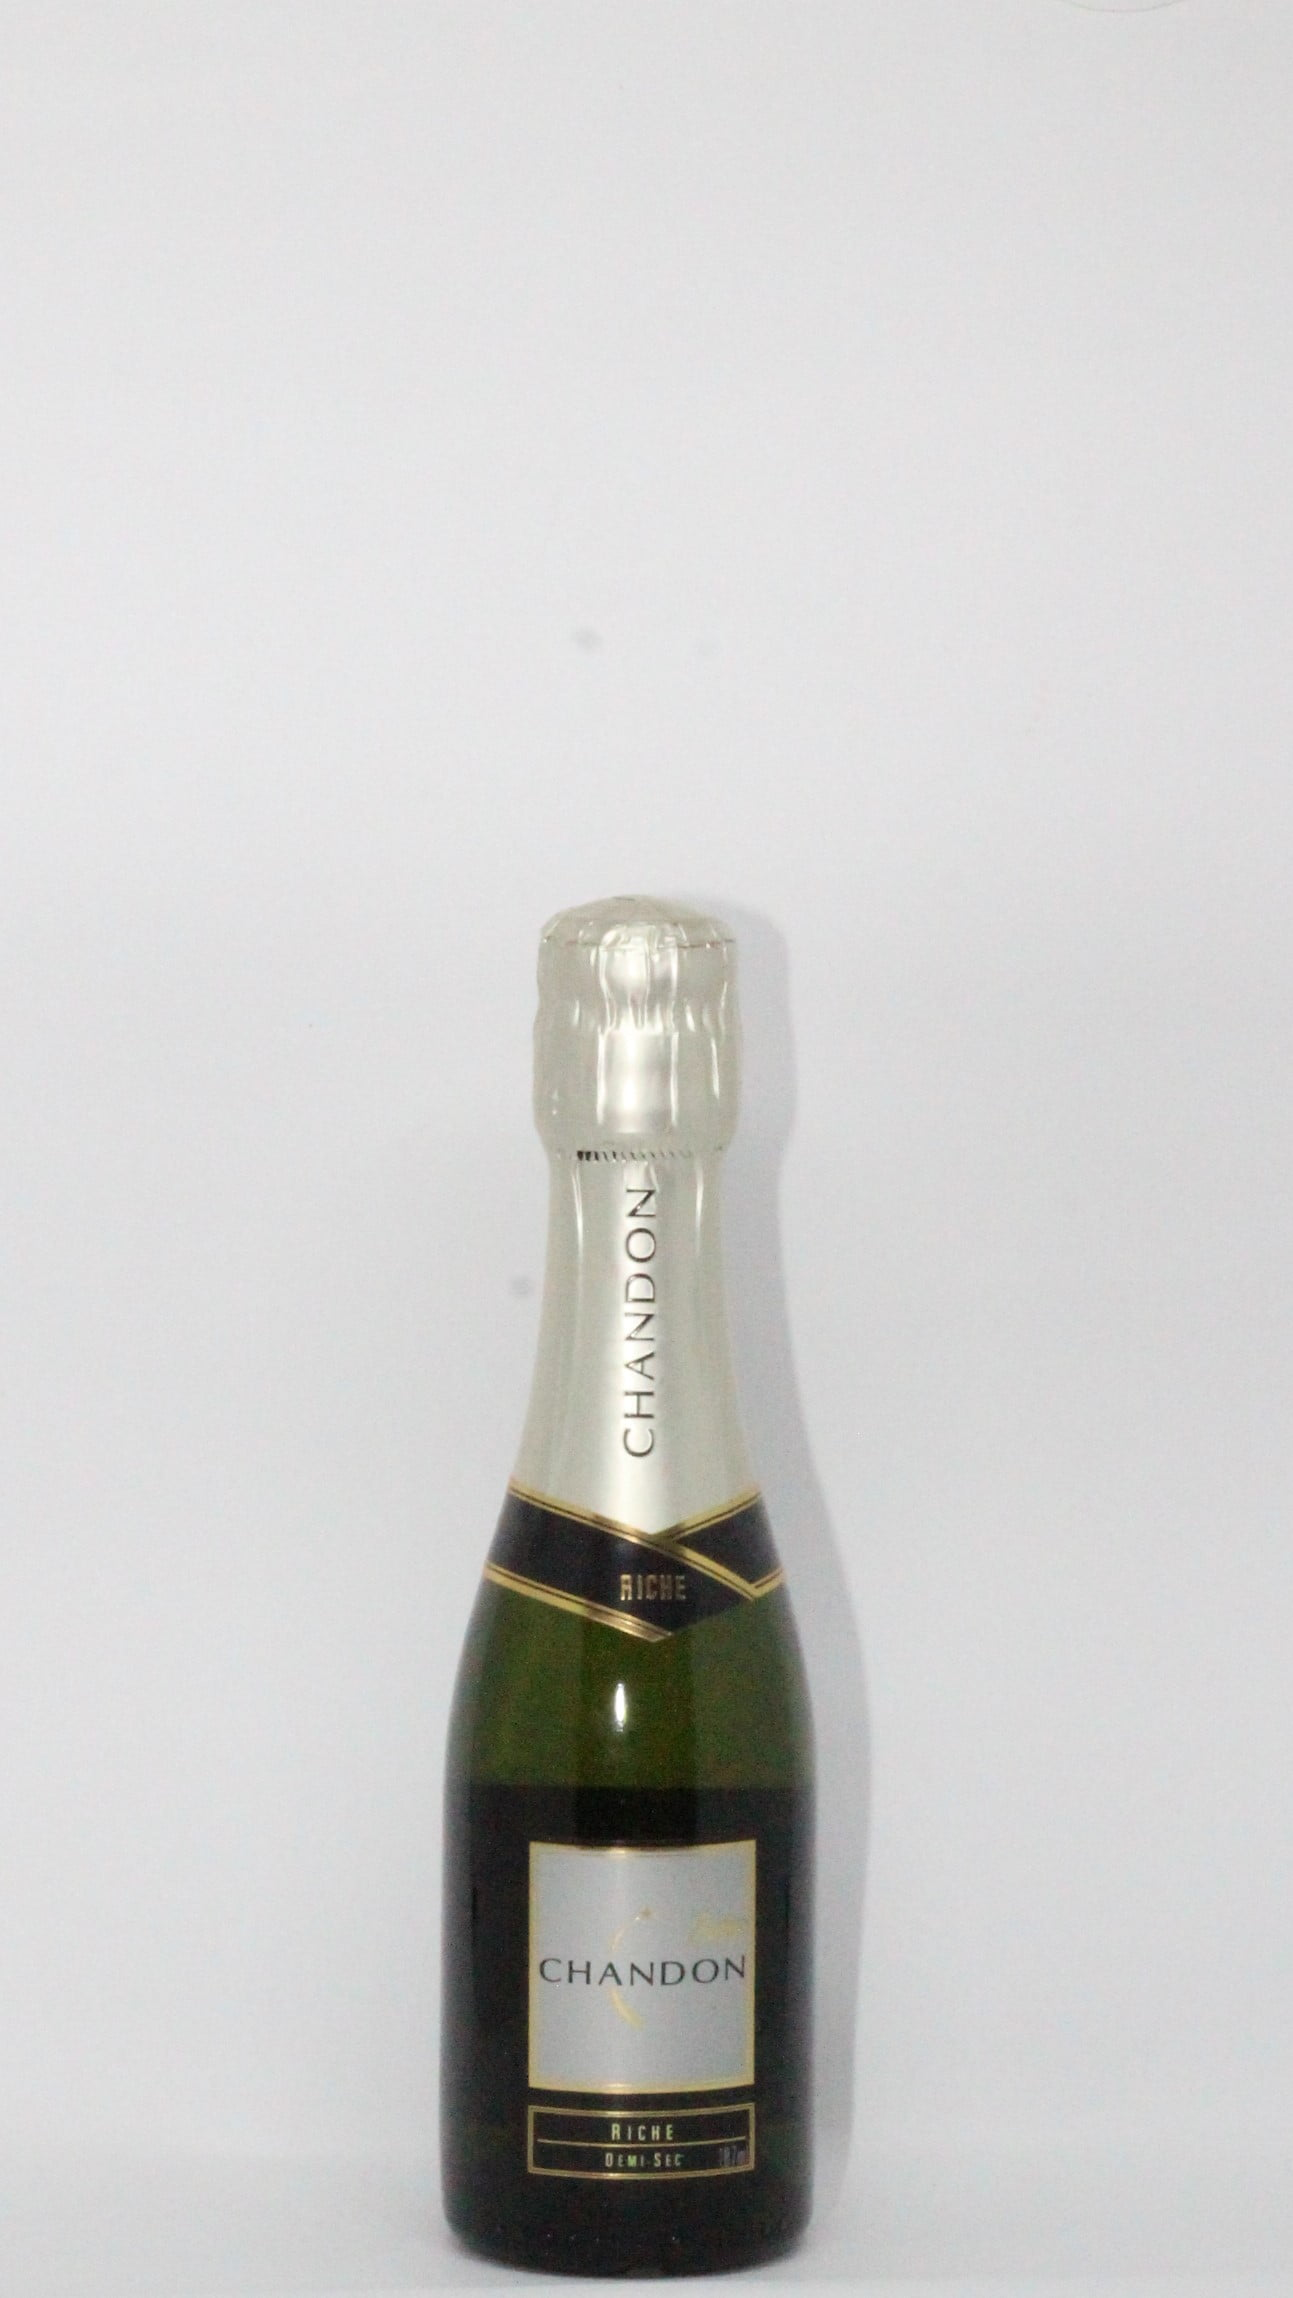 ESPUMANTE CHANDON BABY RICHE DEMI-SEC - 187ml